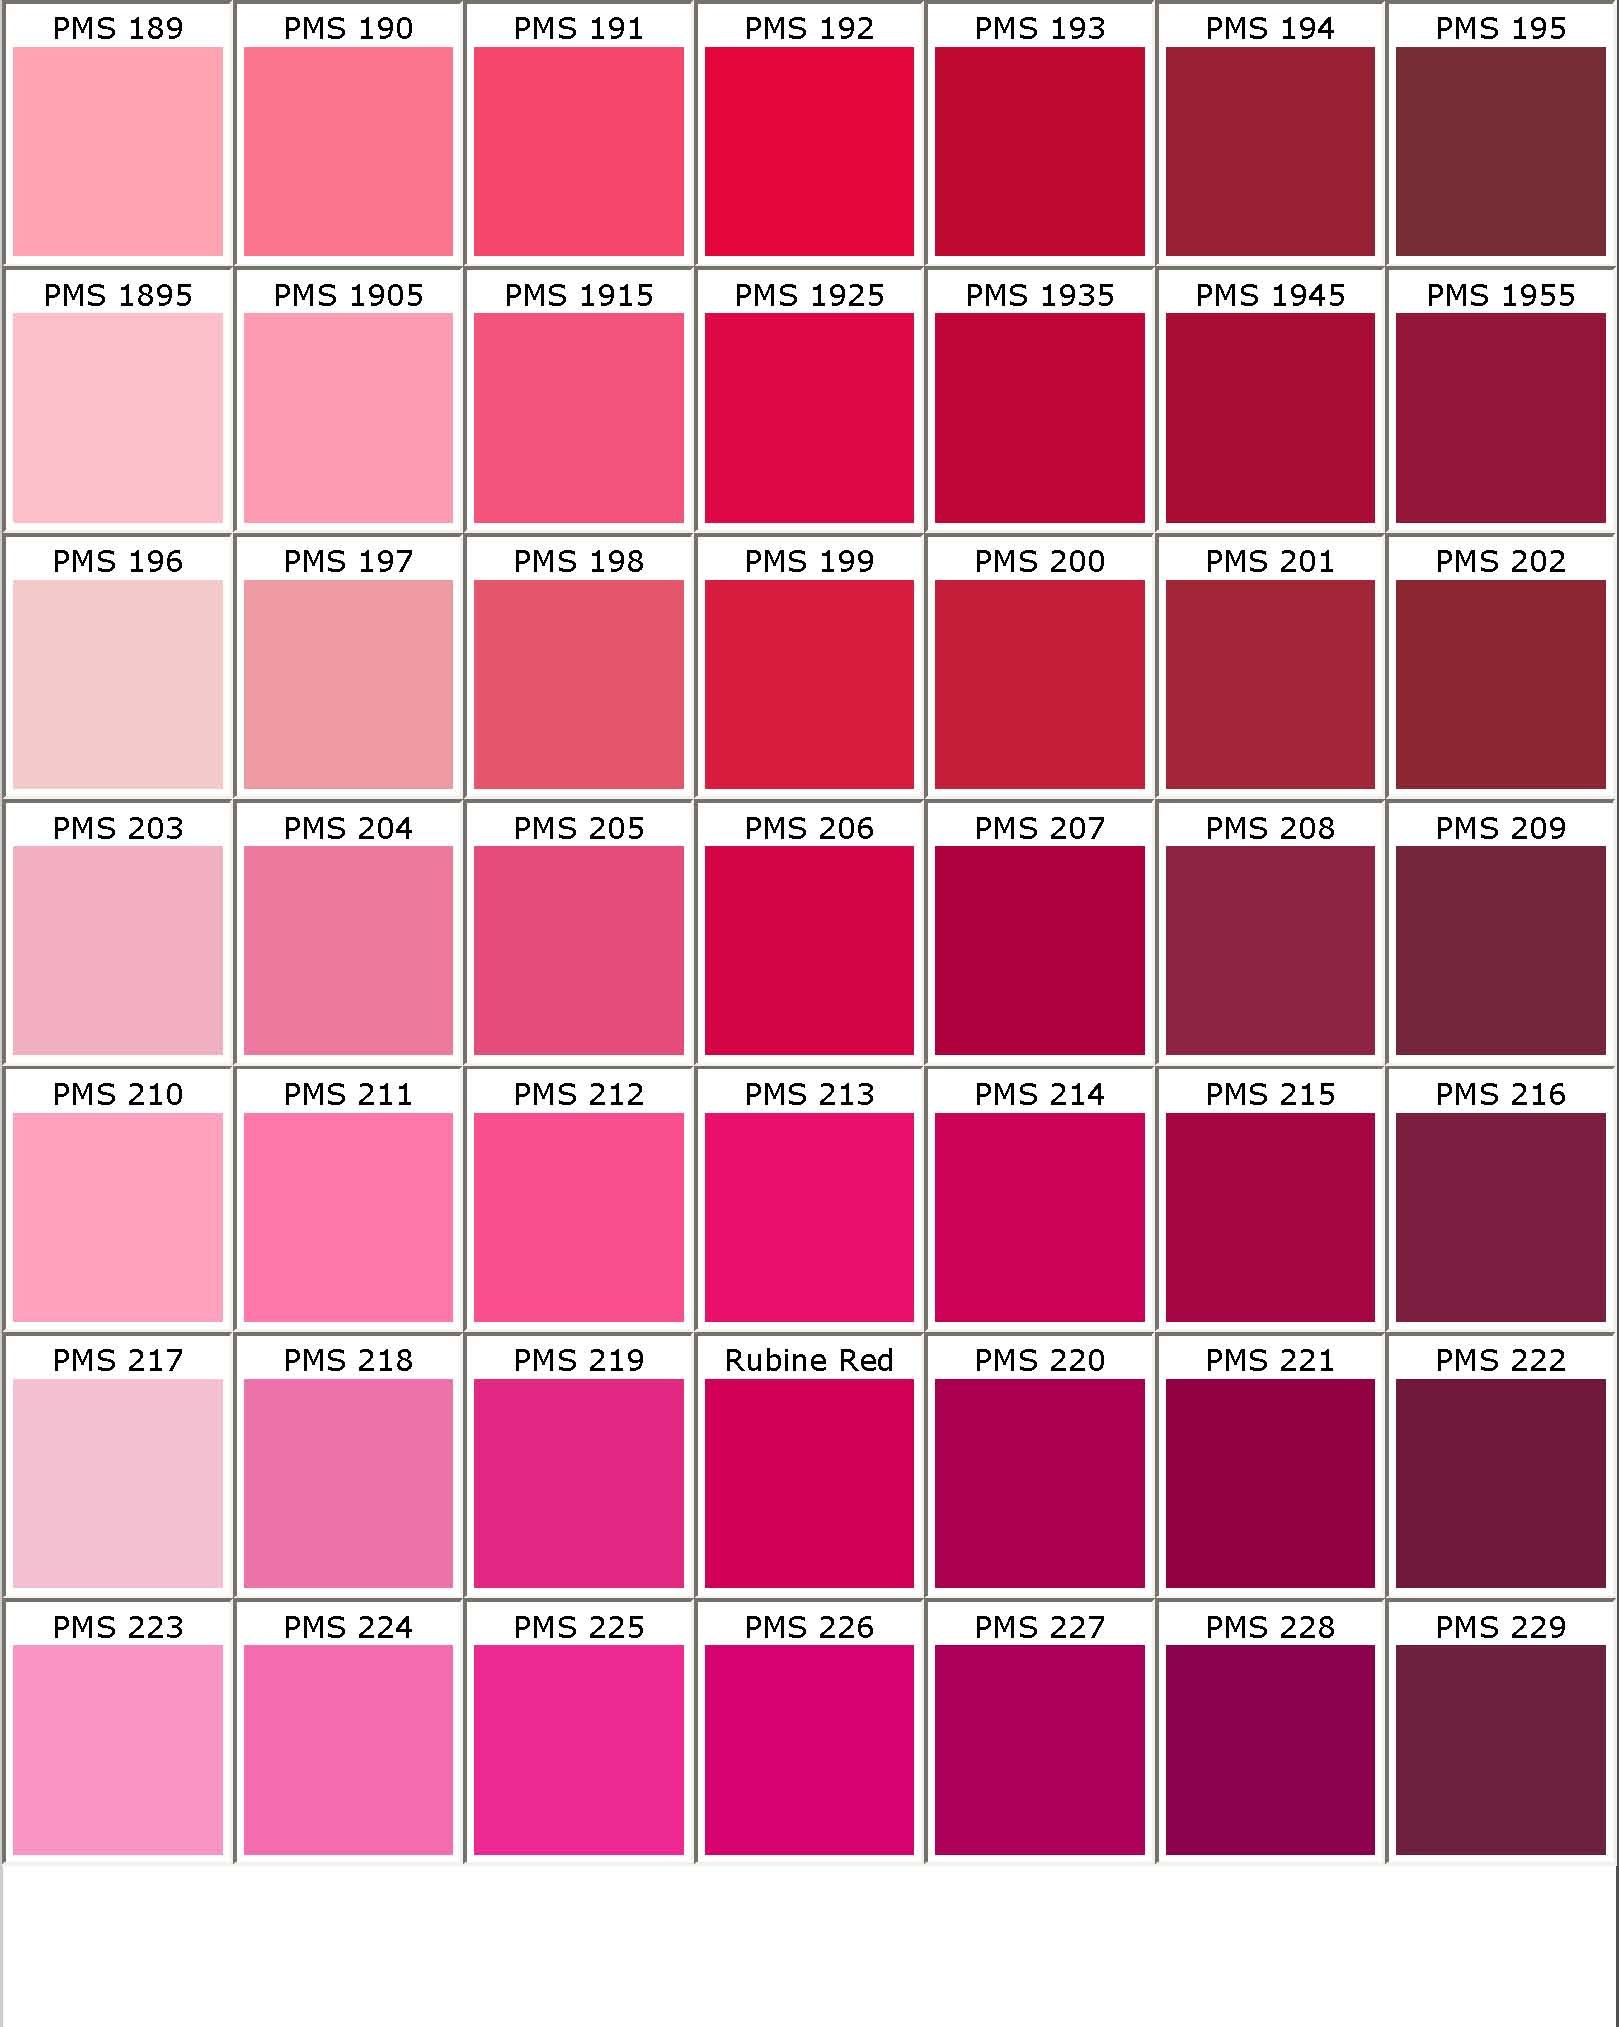 i like the top row of this color chart pms 189 to pms 194 colors rh pinterest com pink colors code pink colors code